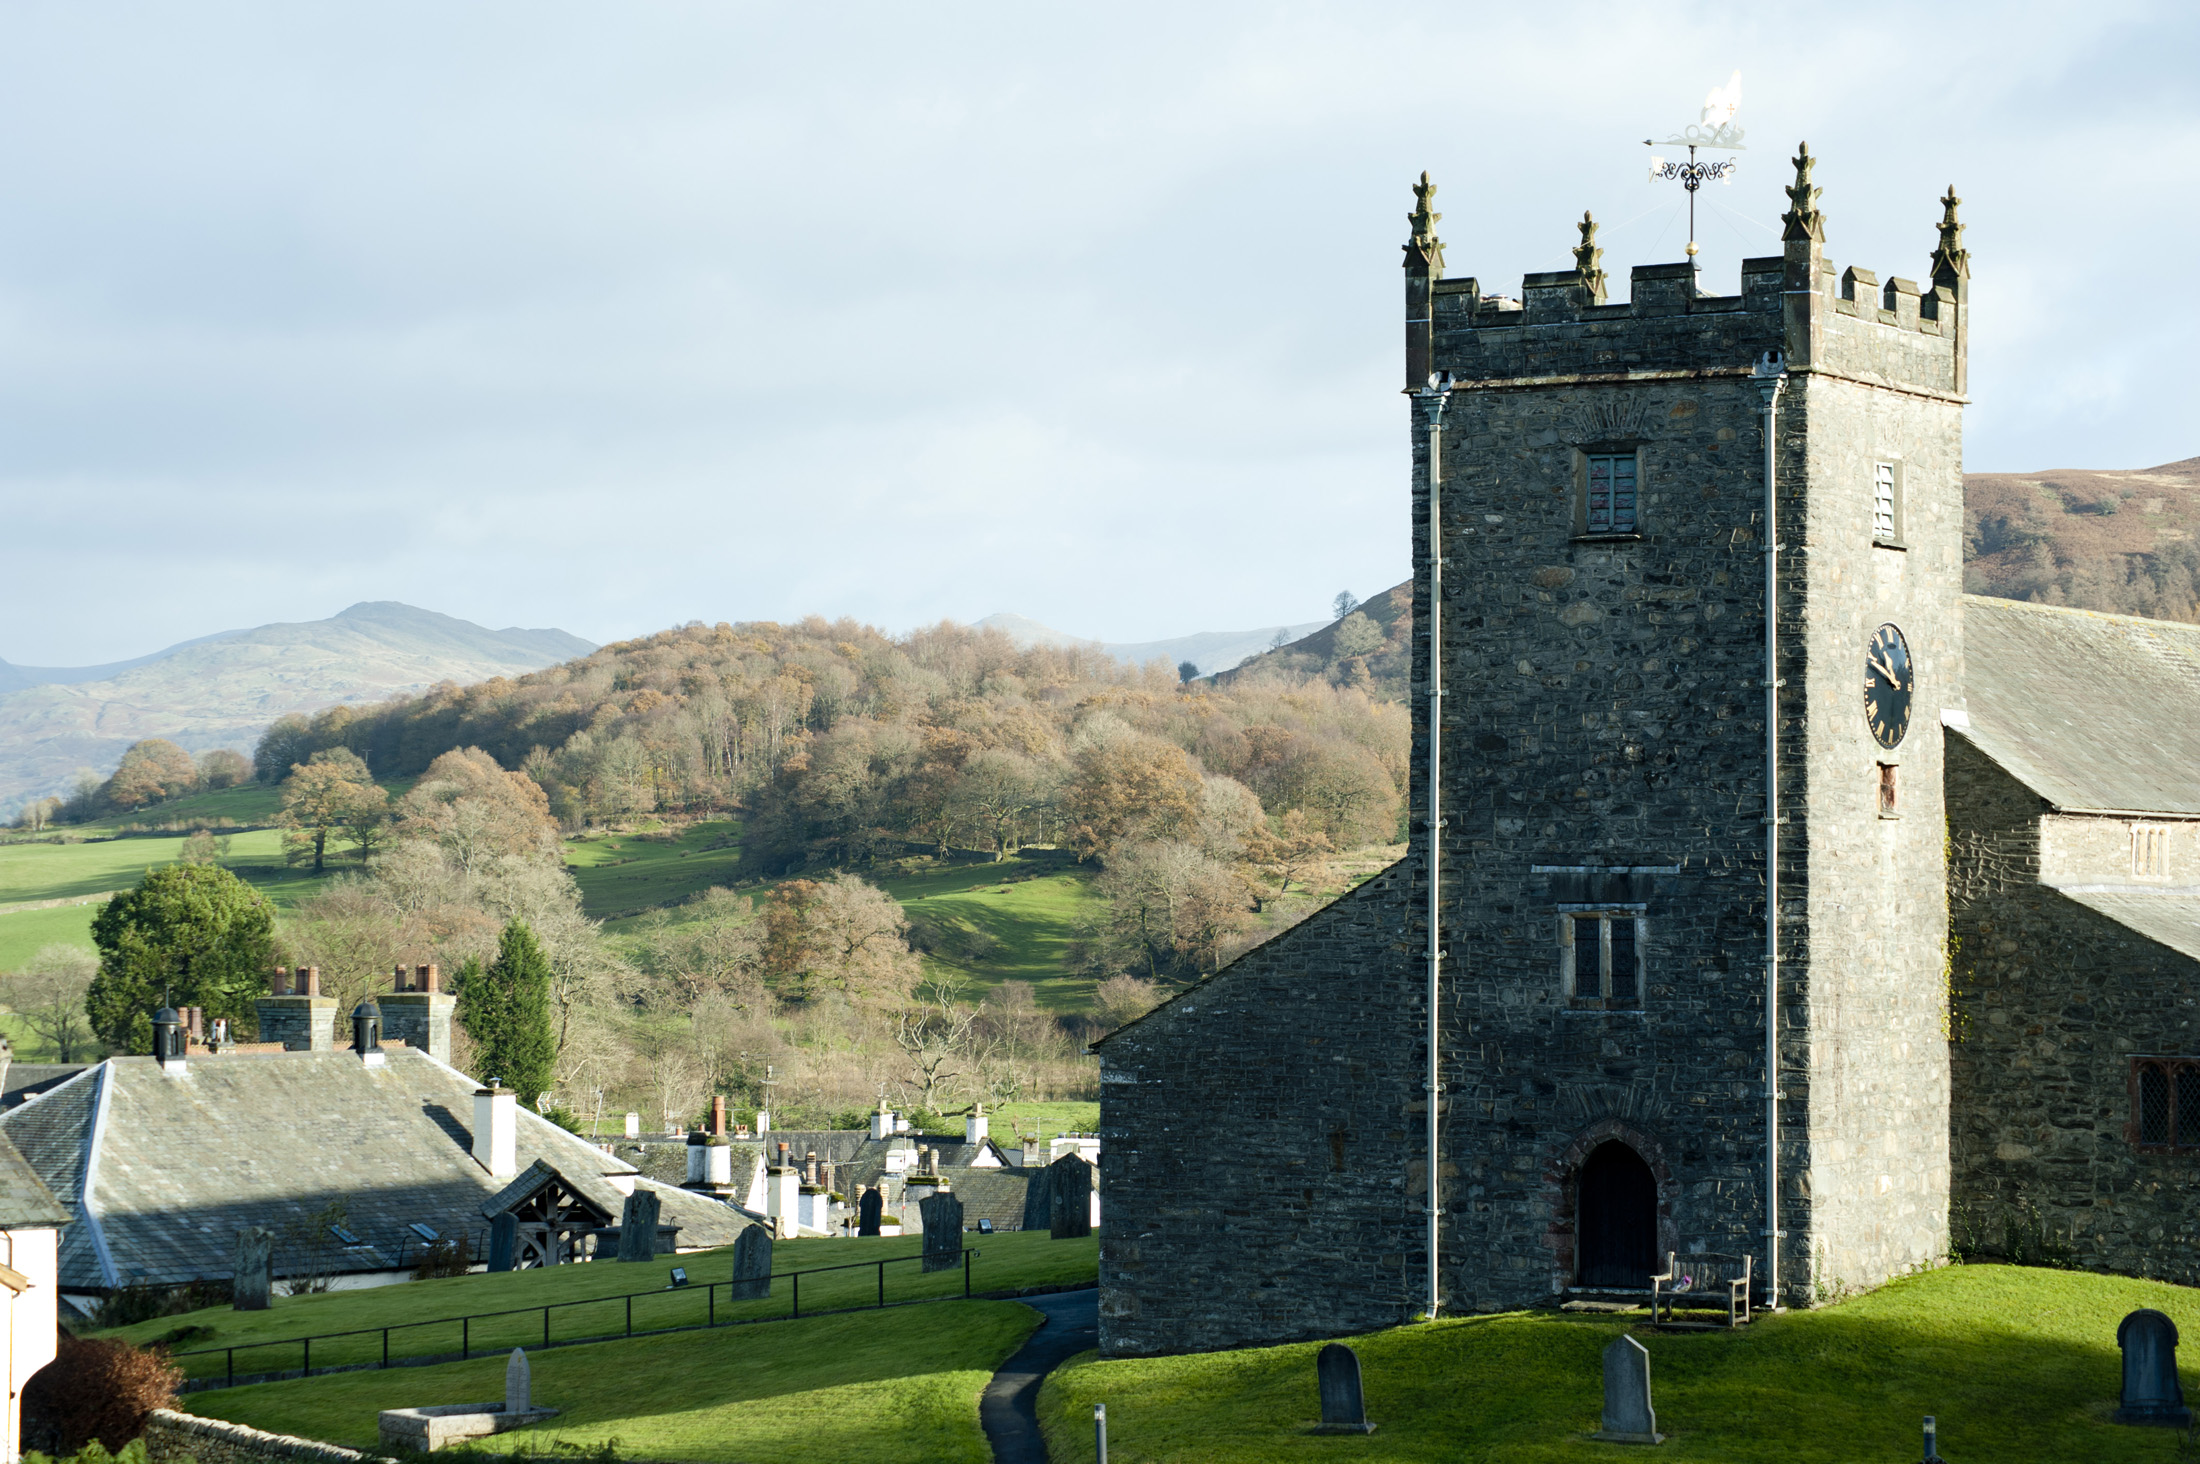 A view of the hawkshead church on a hill overlooking the village and beautiful surrounds